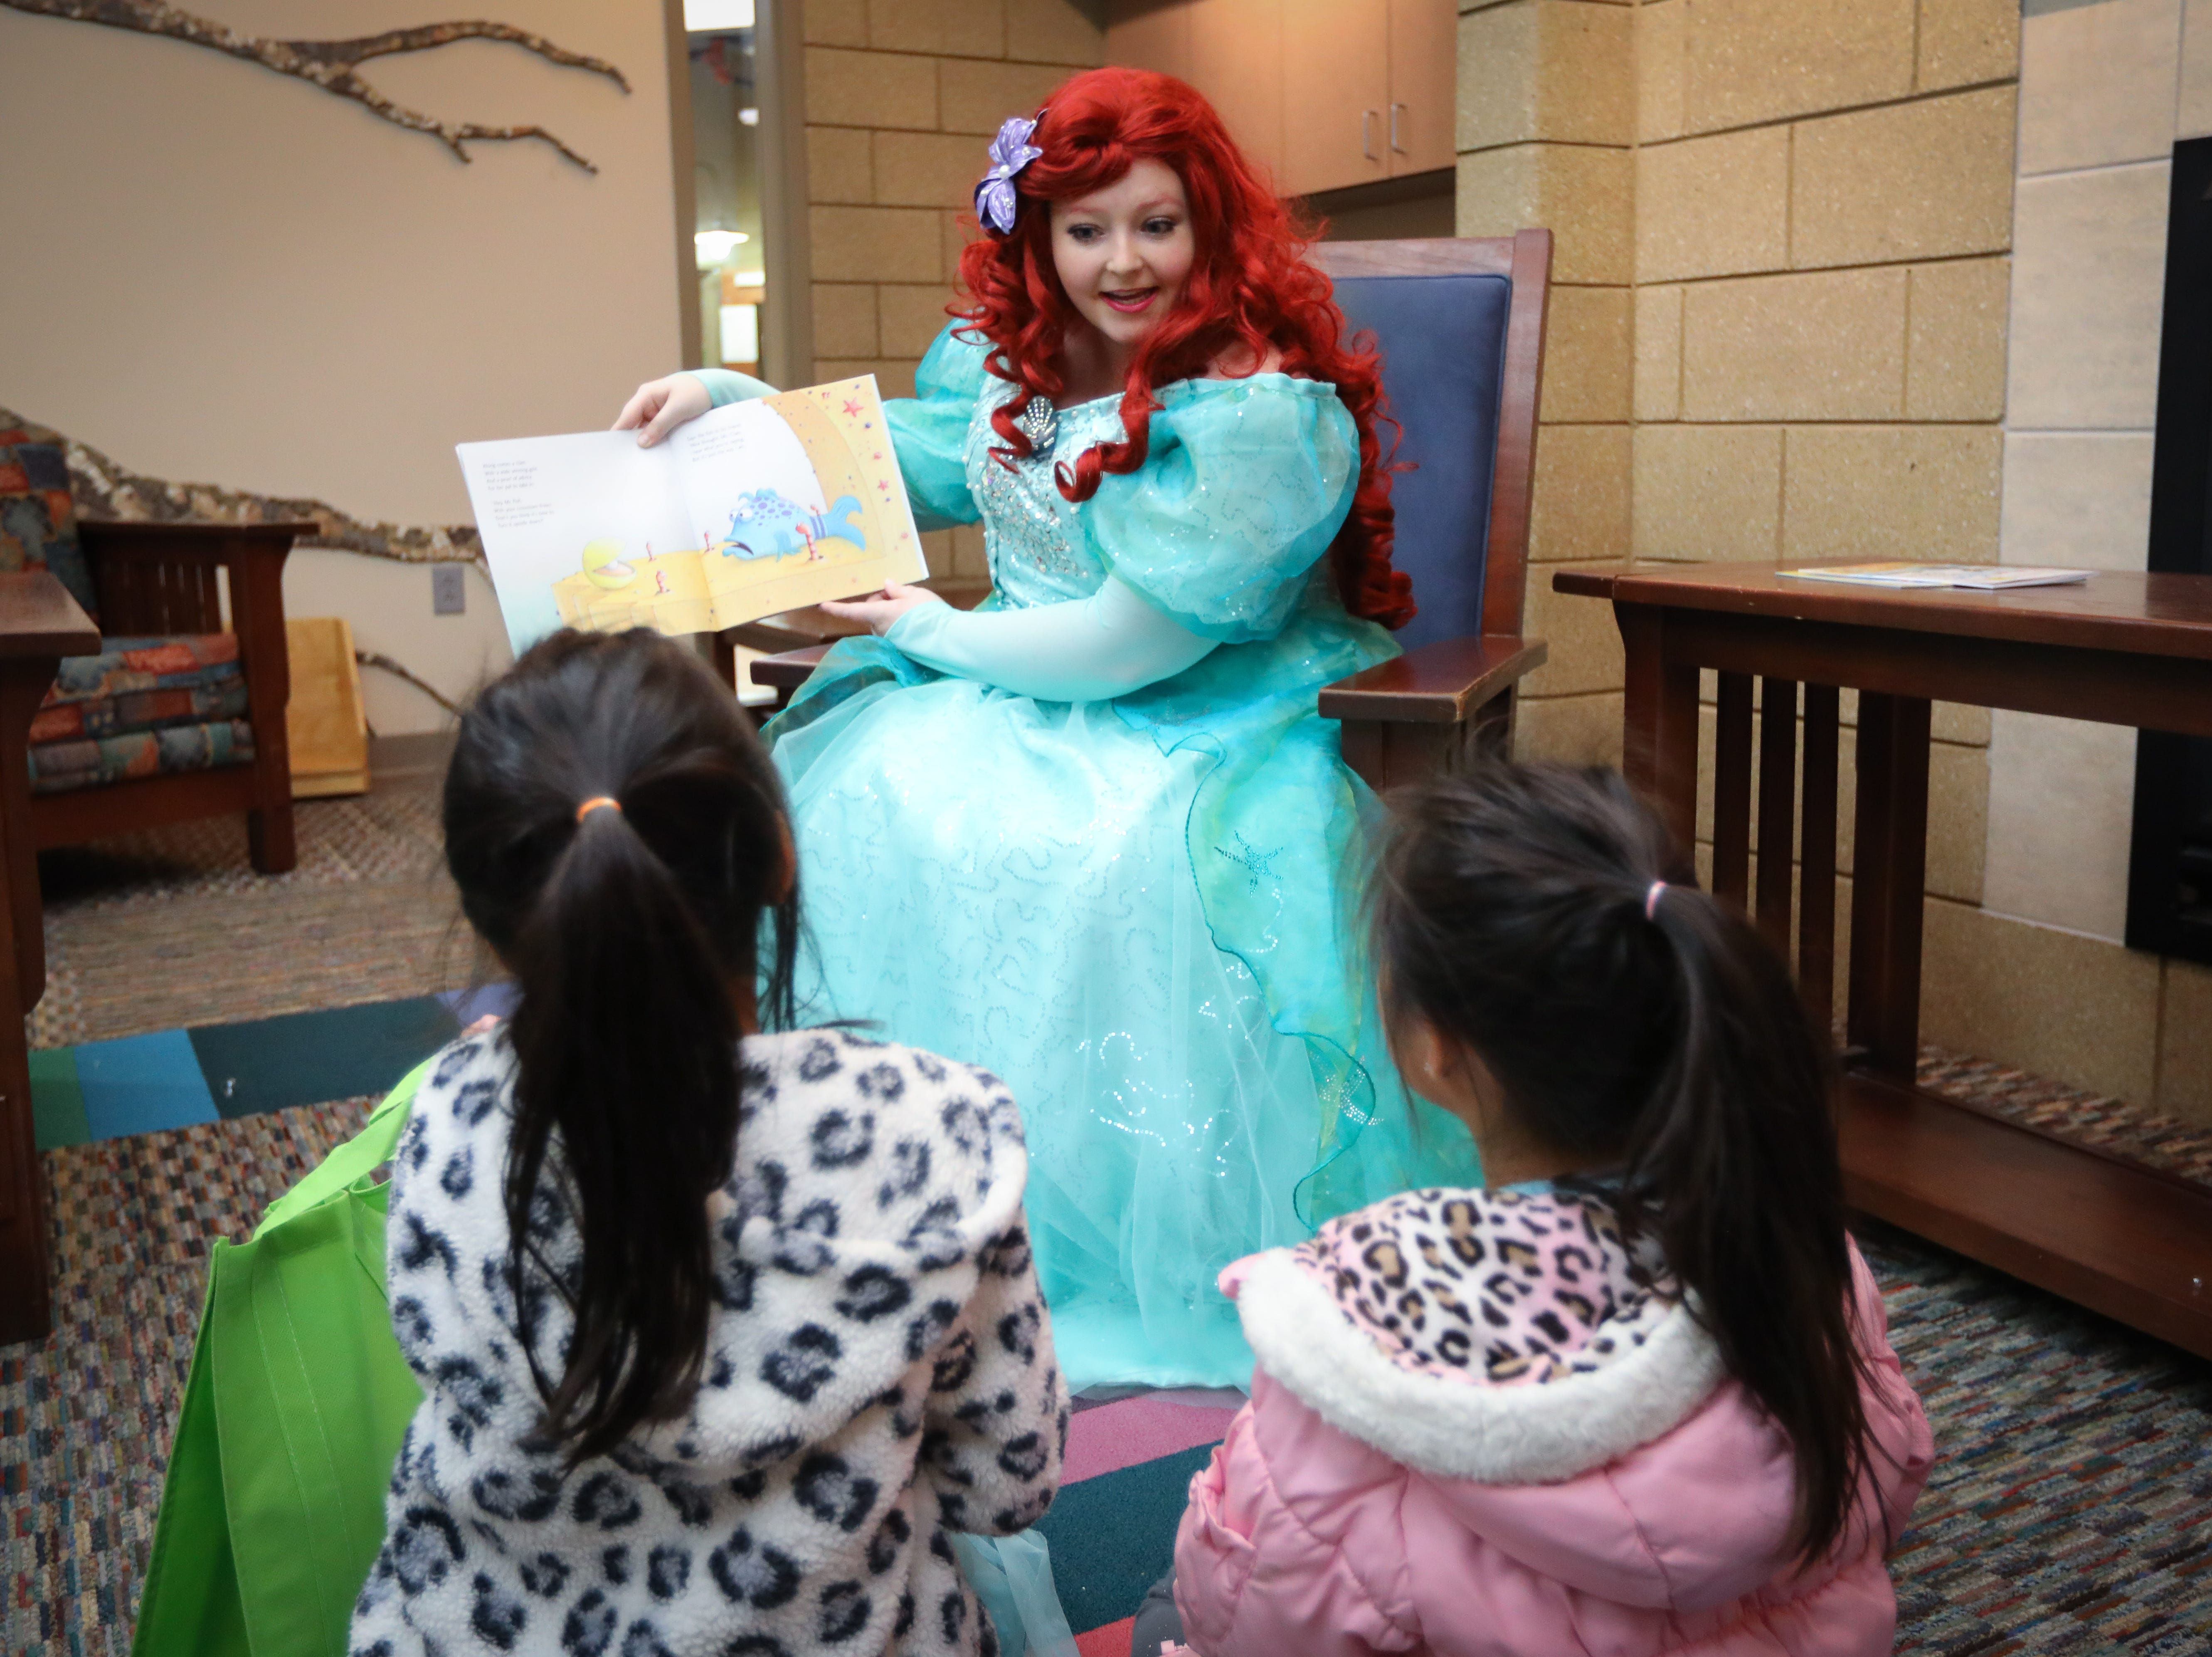 Preschoolers listen to a Disney Princess during a storytelling session in the Preschool Palooza at Hillside Elementary School on Saturday, Nov. 3, 2018 in Des Moines, Iowa.